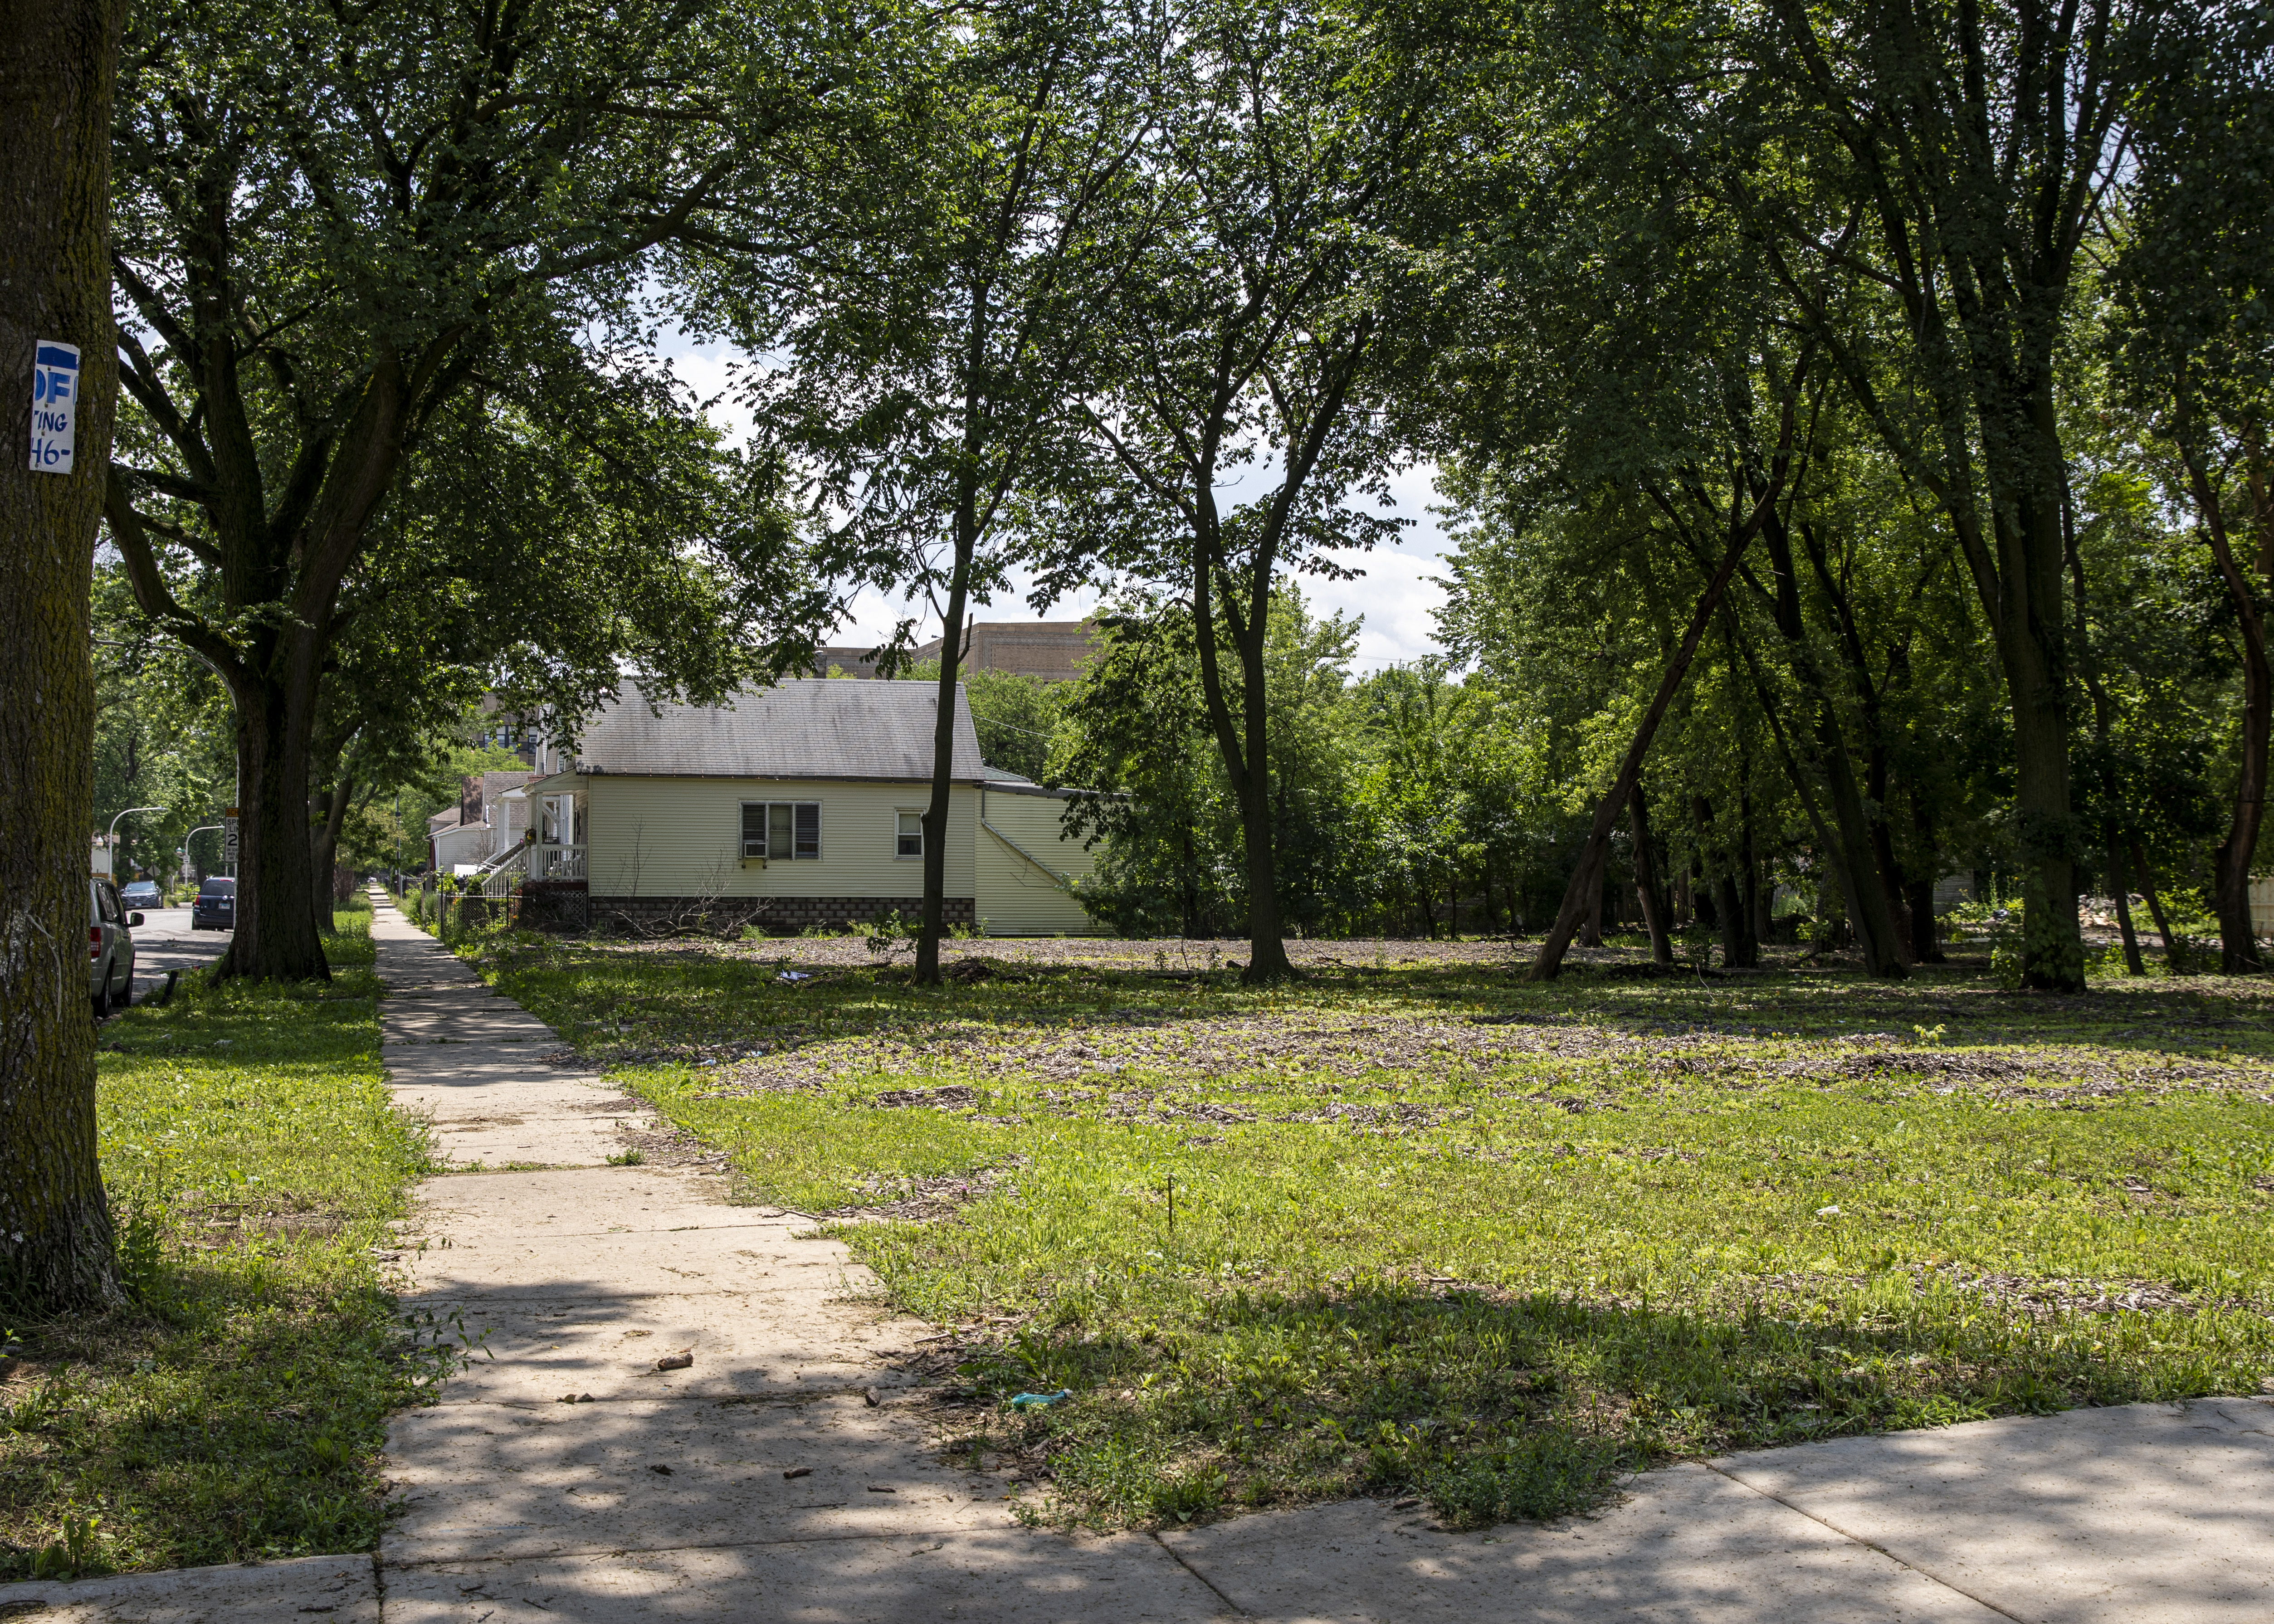 Vacant lots sit in the 6400 block of South Wood Street in Chicago's Englewood neighborhood on the South Side, Wednesday, July 3, 2019.